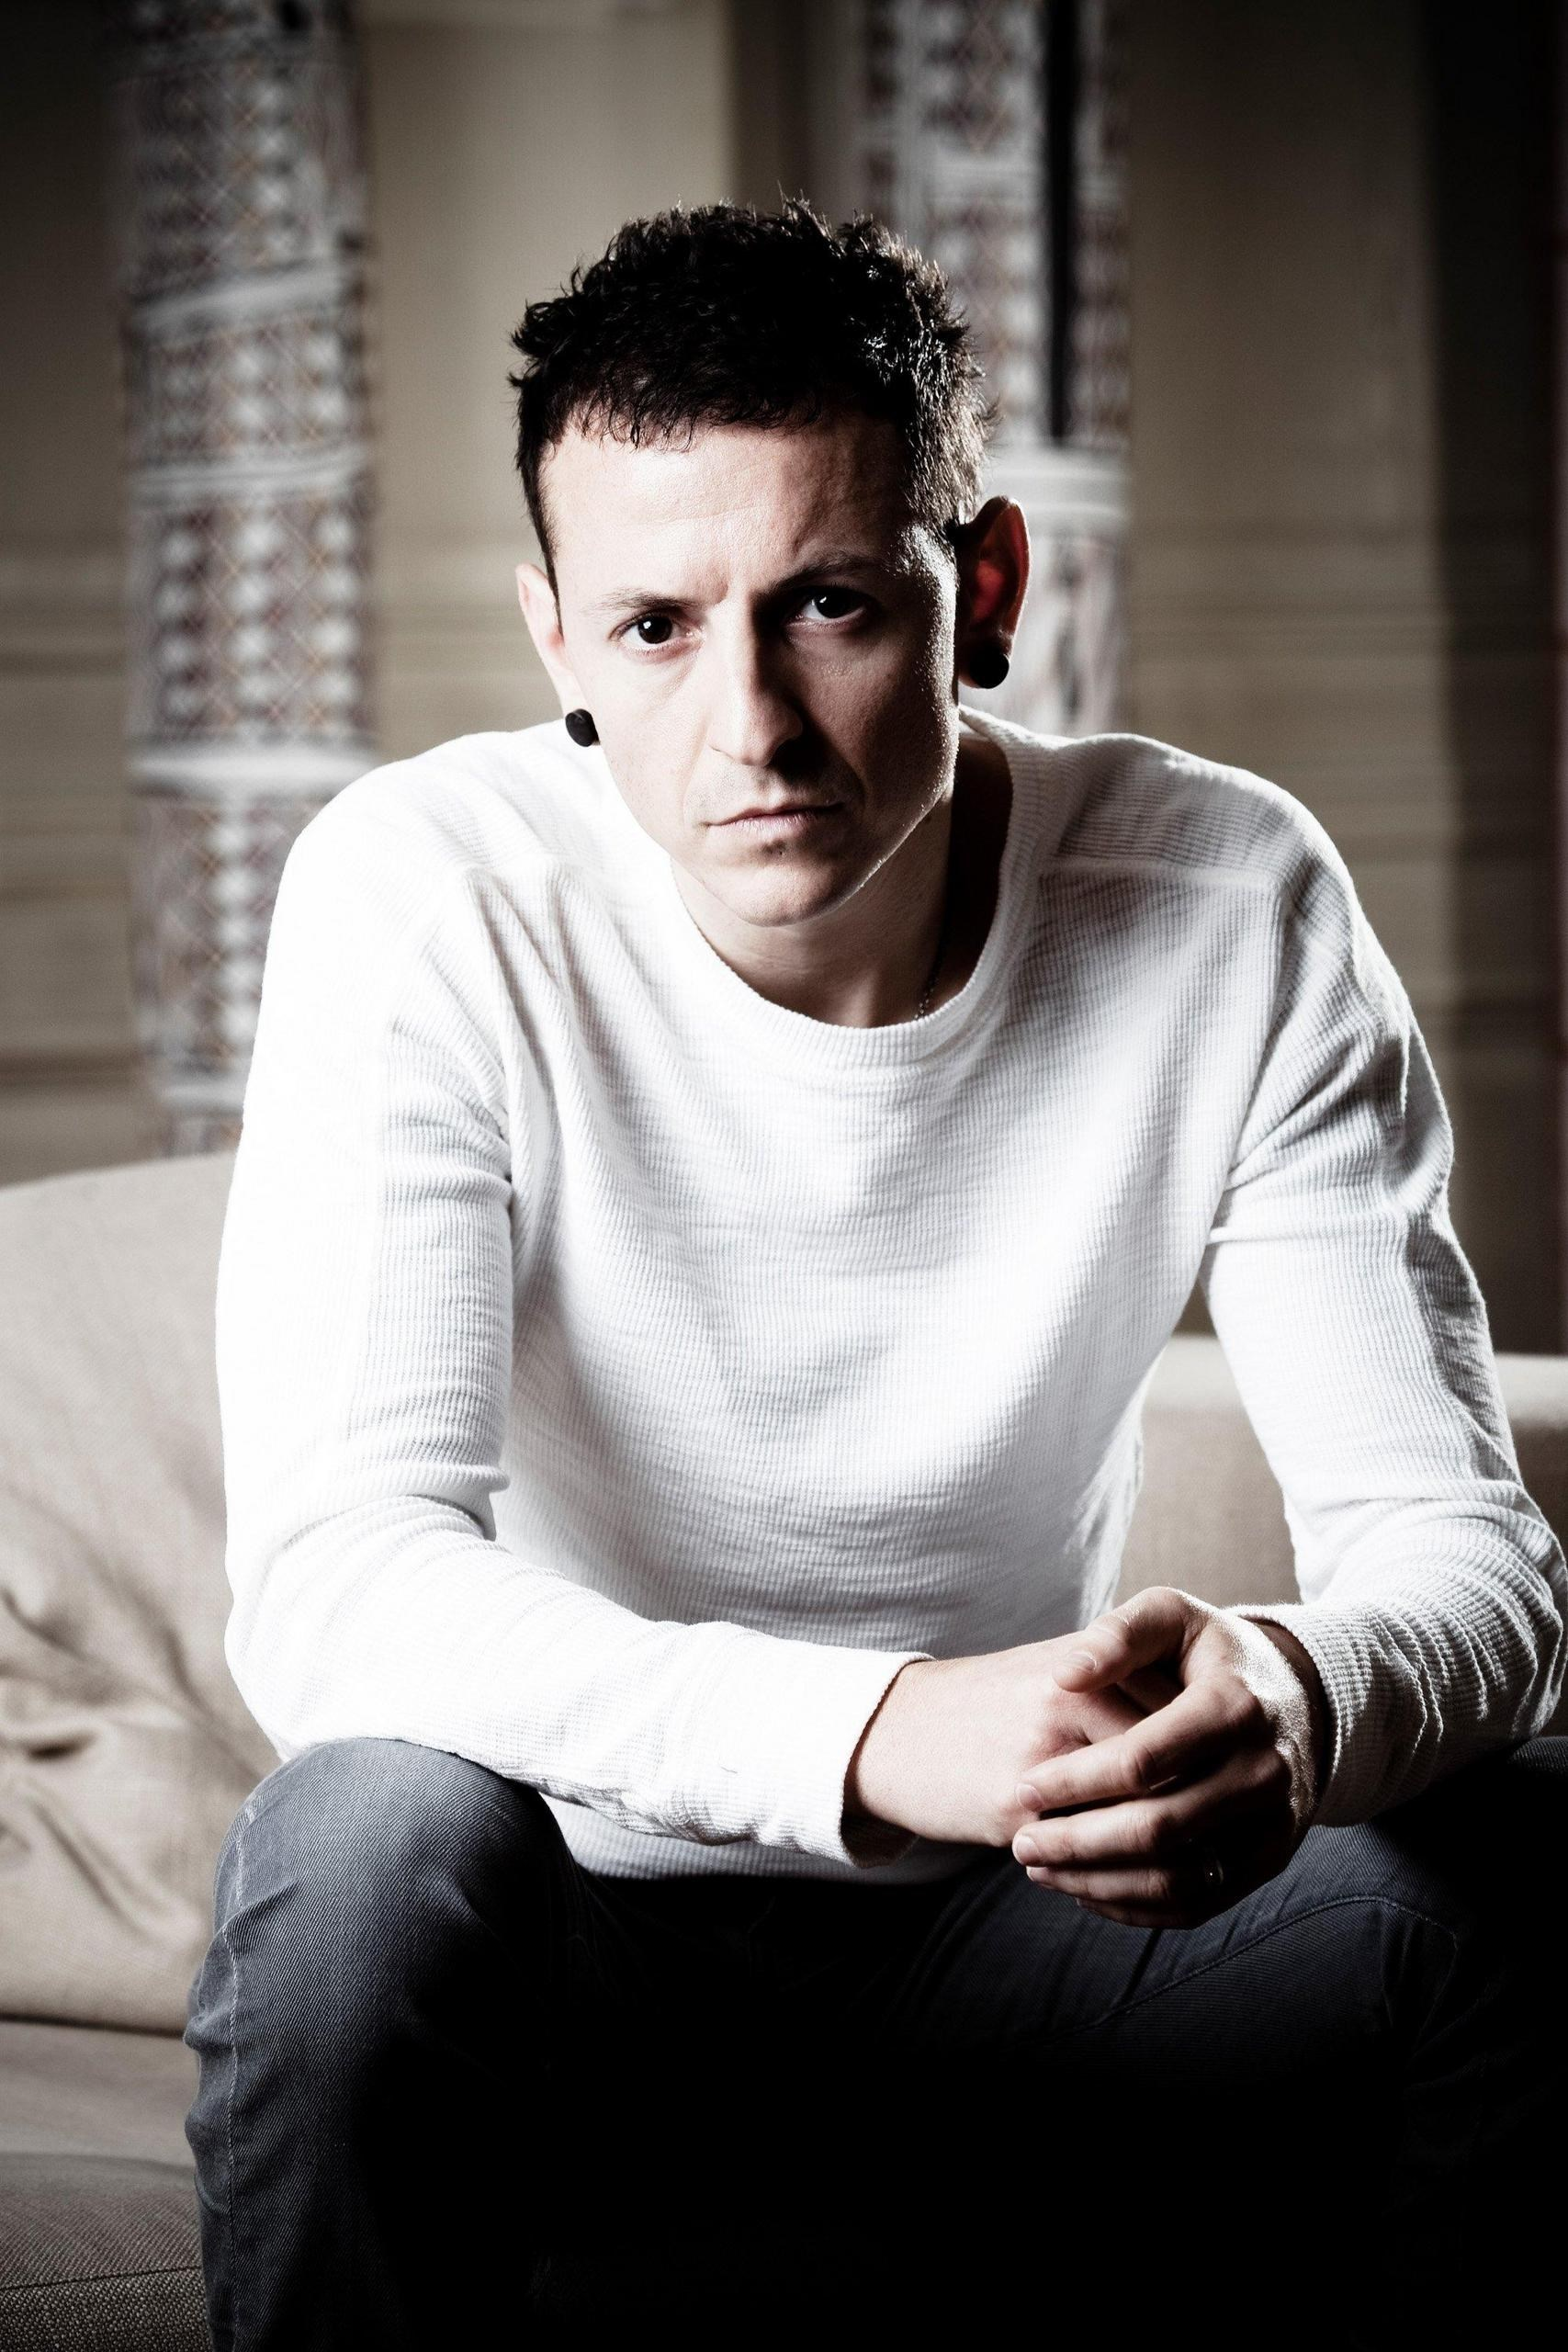 Chester Bennington | Known people - famous people news and biographies